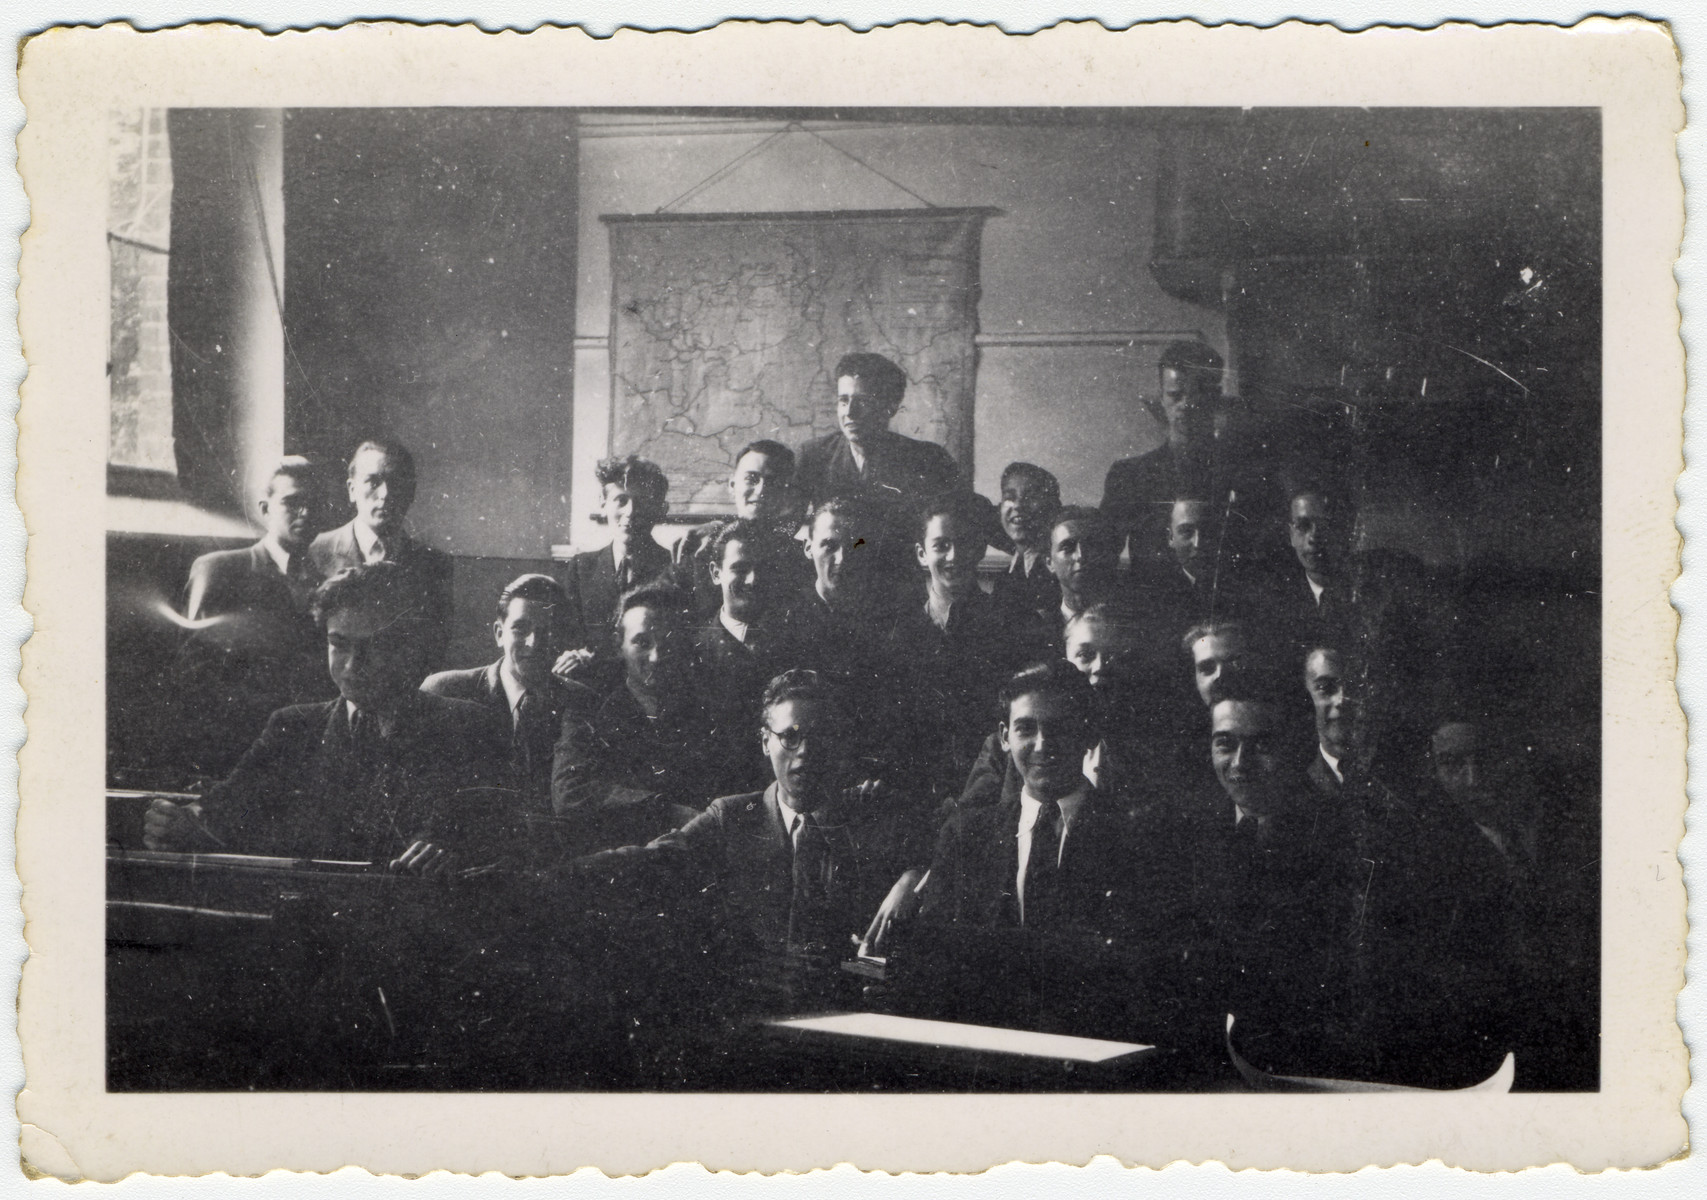 Group portrait of male students at the Lycee Athenee de Saint-Gilles.  Haim Sephia is seated in the front row, third from the right. Also pictured are Adam Joseph and Marcel Brodthaers on the far right.